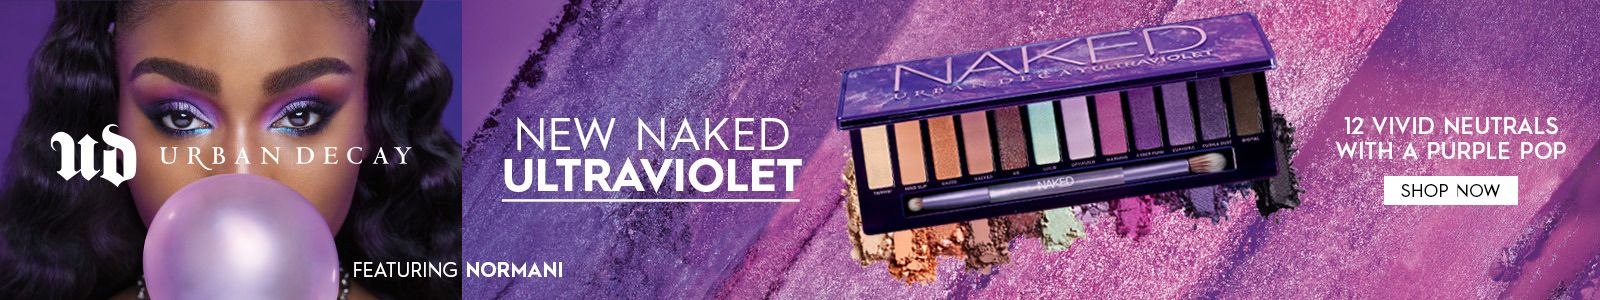 Ud, Urban Decay, New Naked Ultraviolet, Featuring Normani, Shop Now